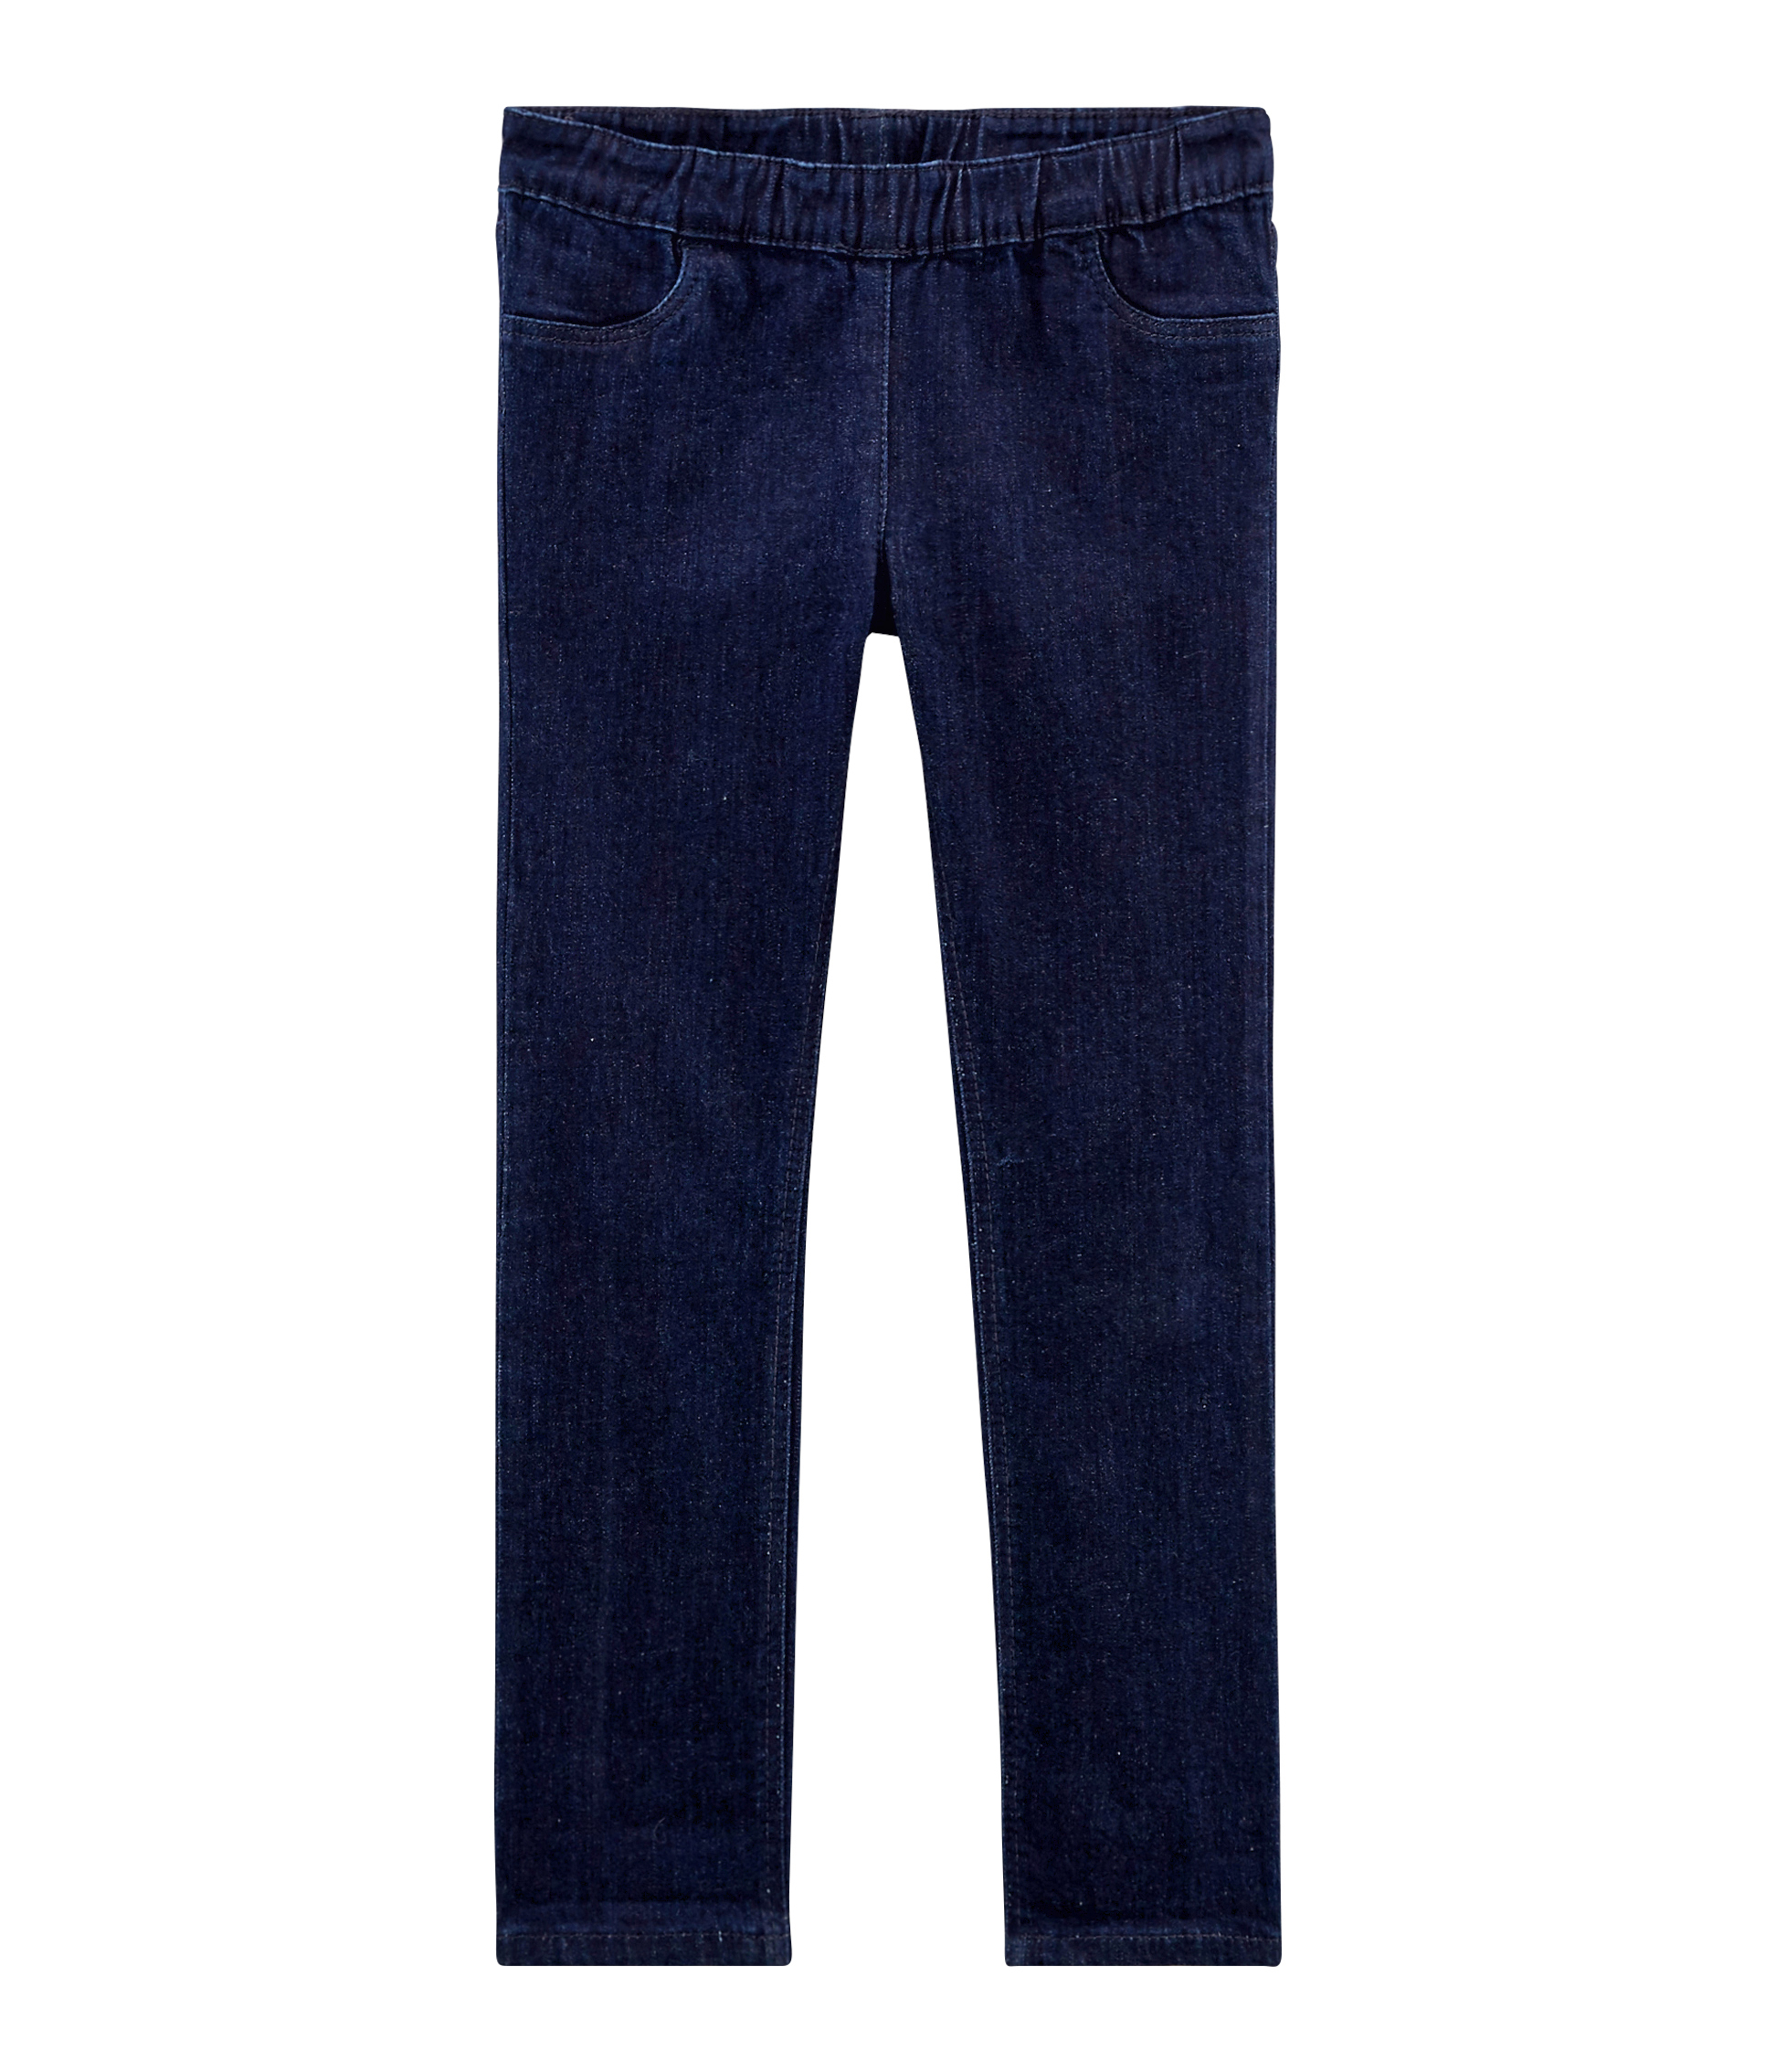 Pantalon denim enfant fille